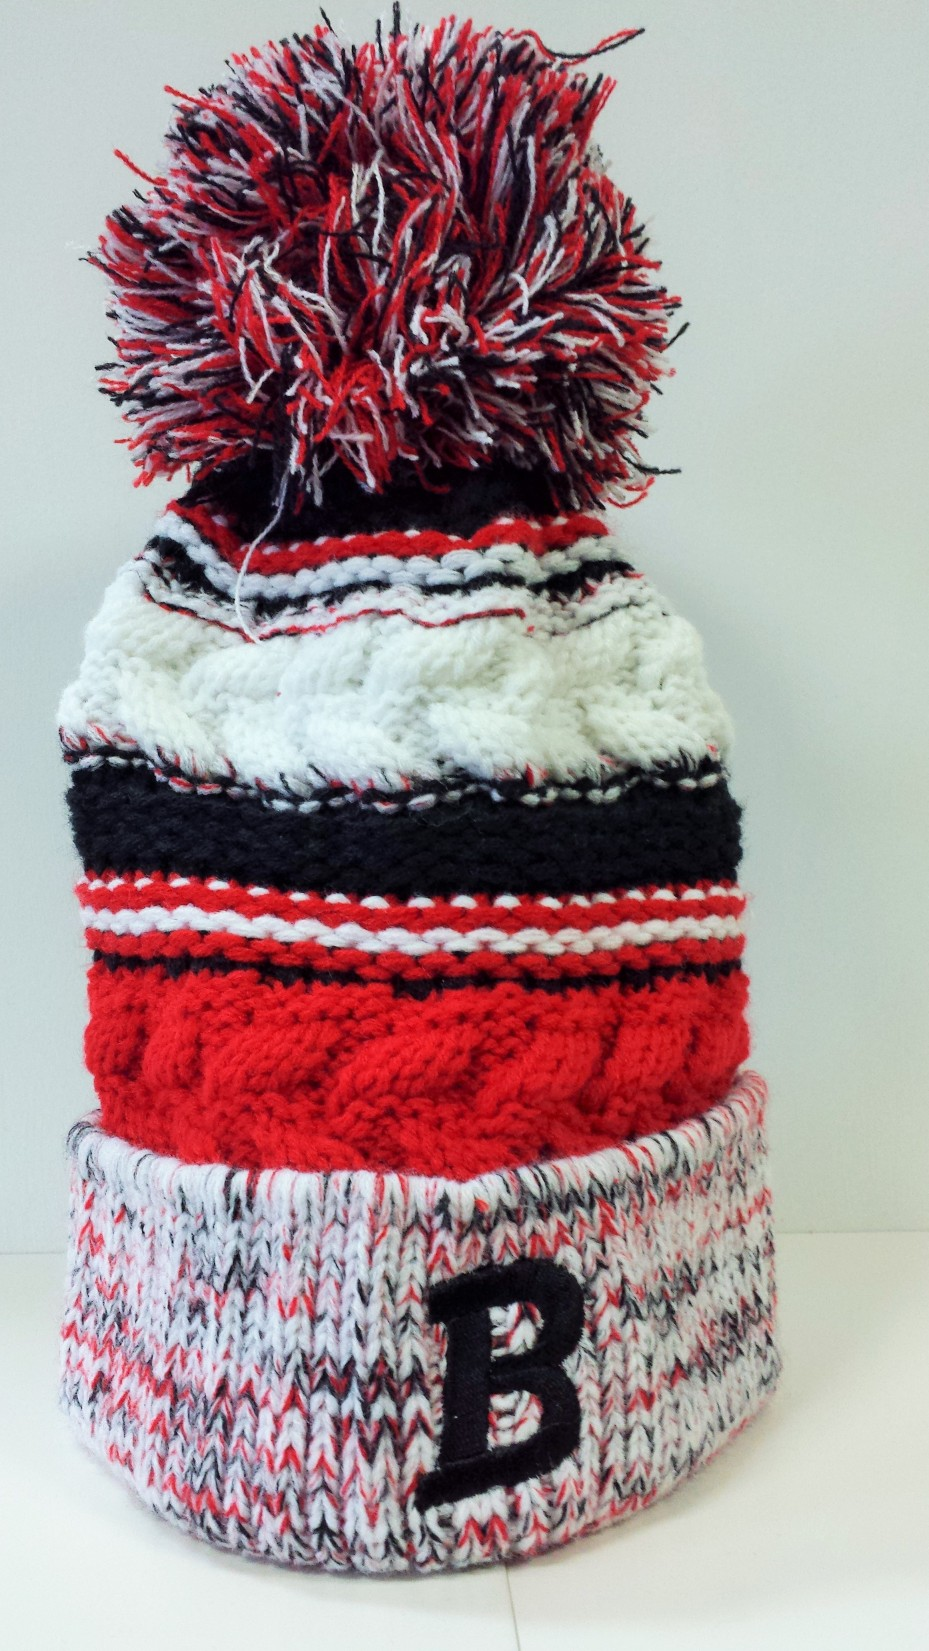 418f2d67036 Pom Pom Beanie Hat - Bedford Kicking Mules - Embroidered B